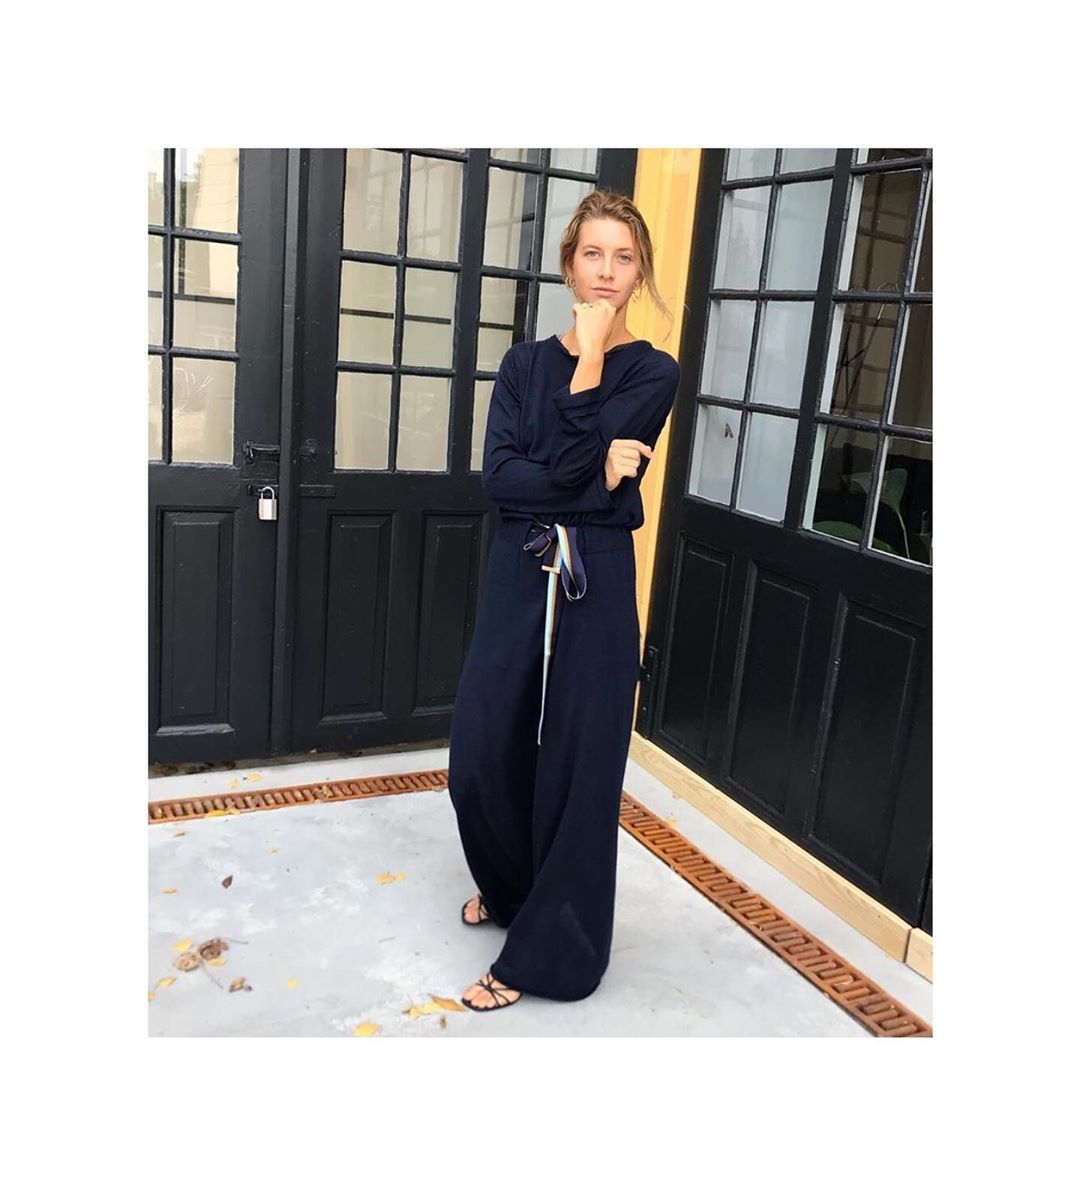 """Antonia Zander - The Team on Instagram: """"Nordic by nature! #beautiful @sofialynggaardn wearing our #knitteddress #madeinitaly #linen #cashmere #silk #danishstyle ❤️"""""""